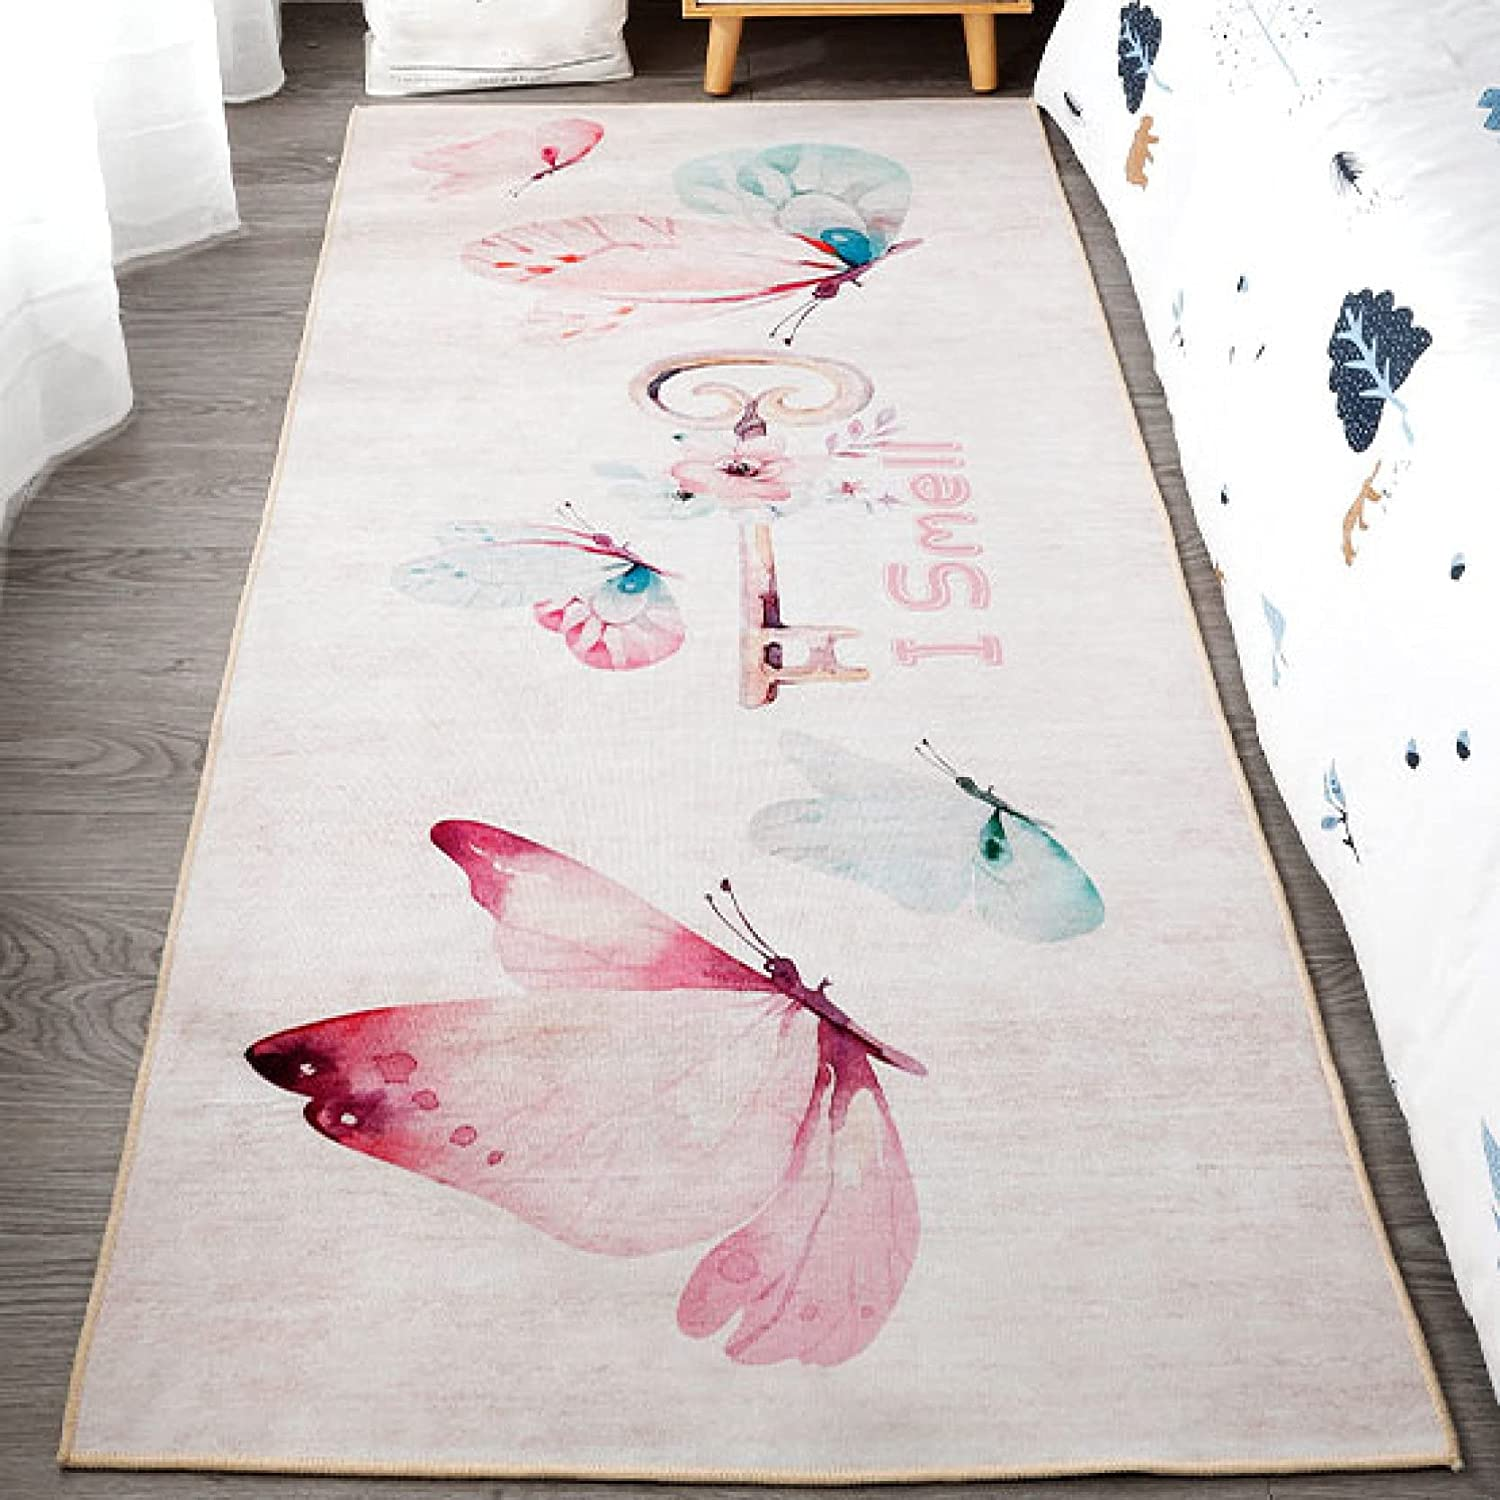 Shaggy Limited time trial price Floor Outdoor Rug Fluffy Laundry Baby Rugs Super beauty product restock quality top! Area for Girls